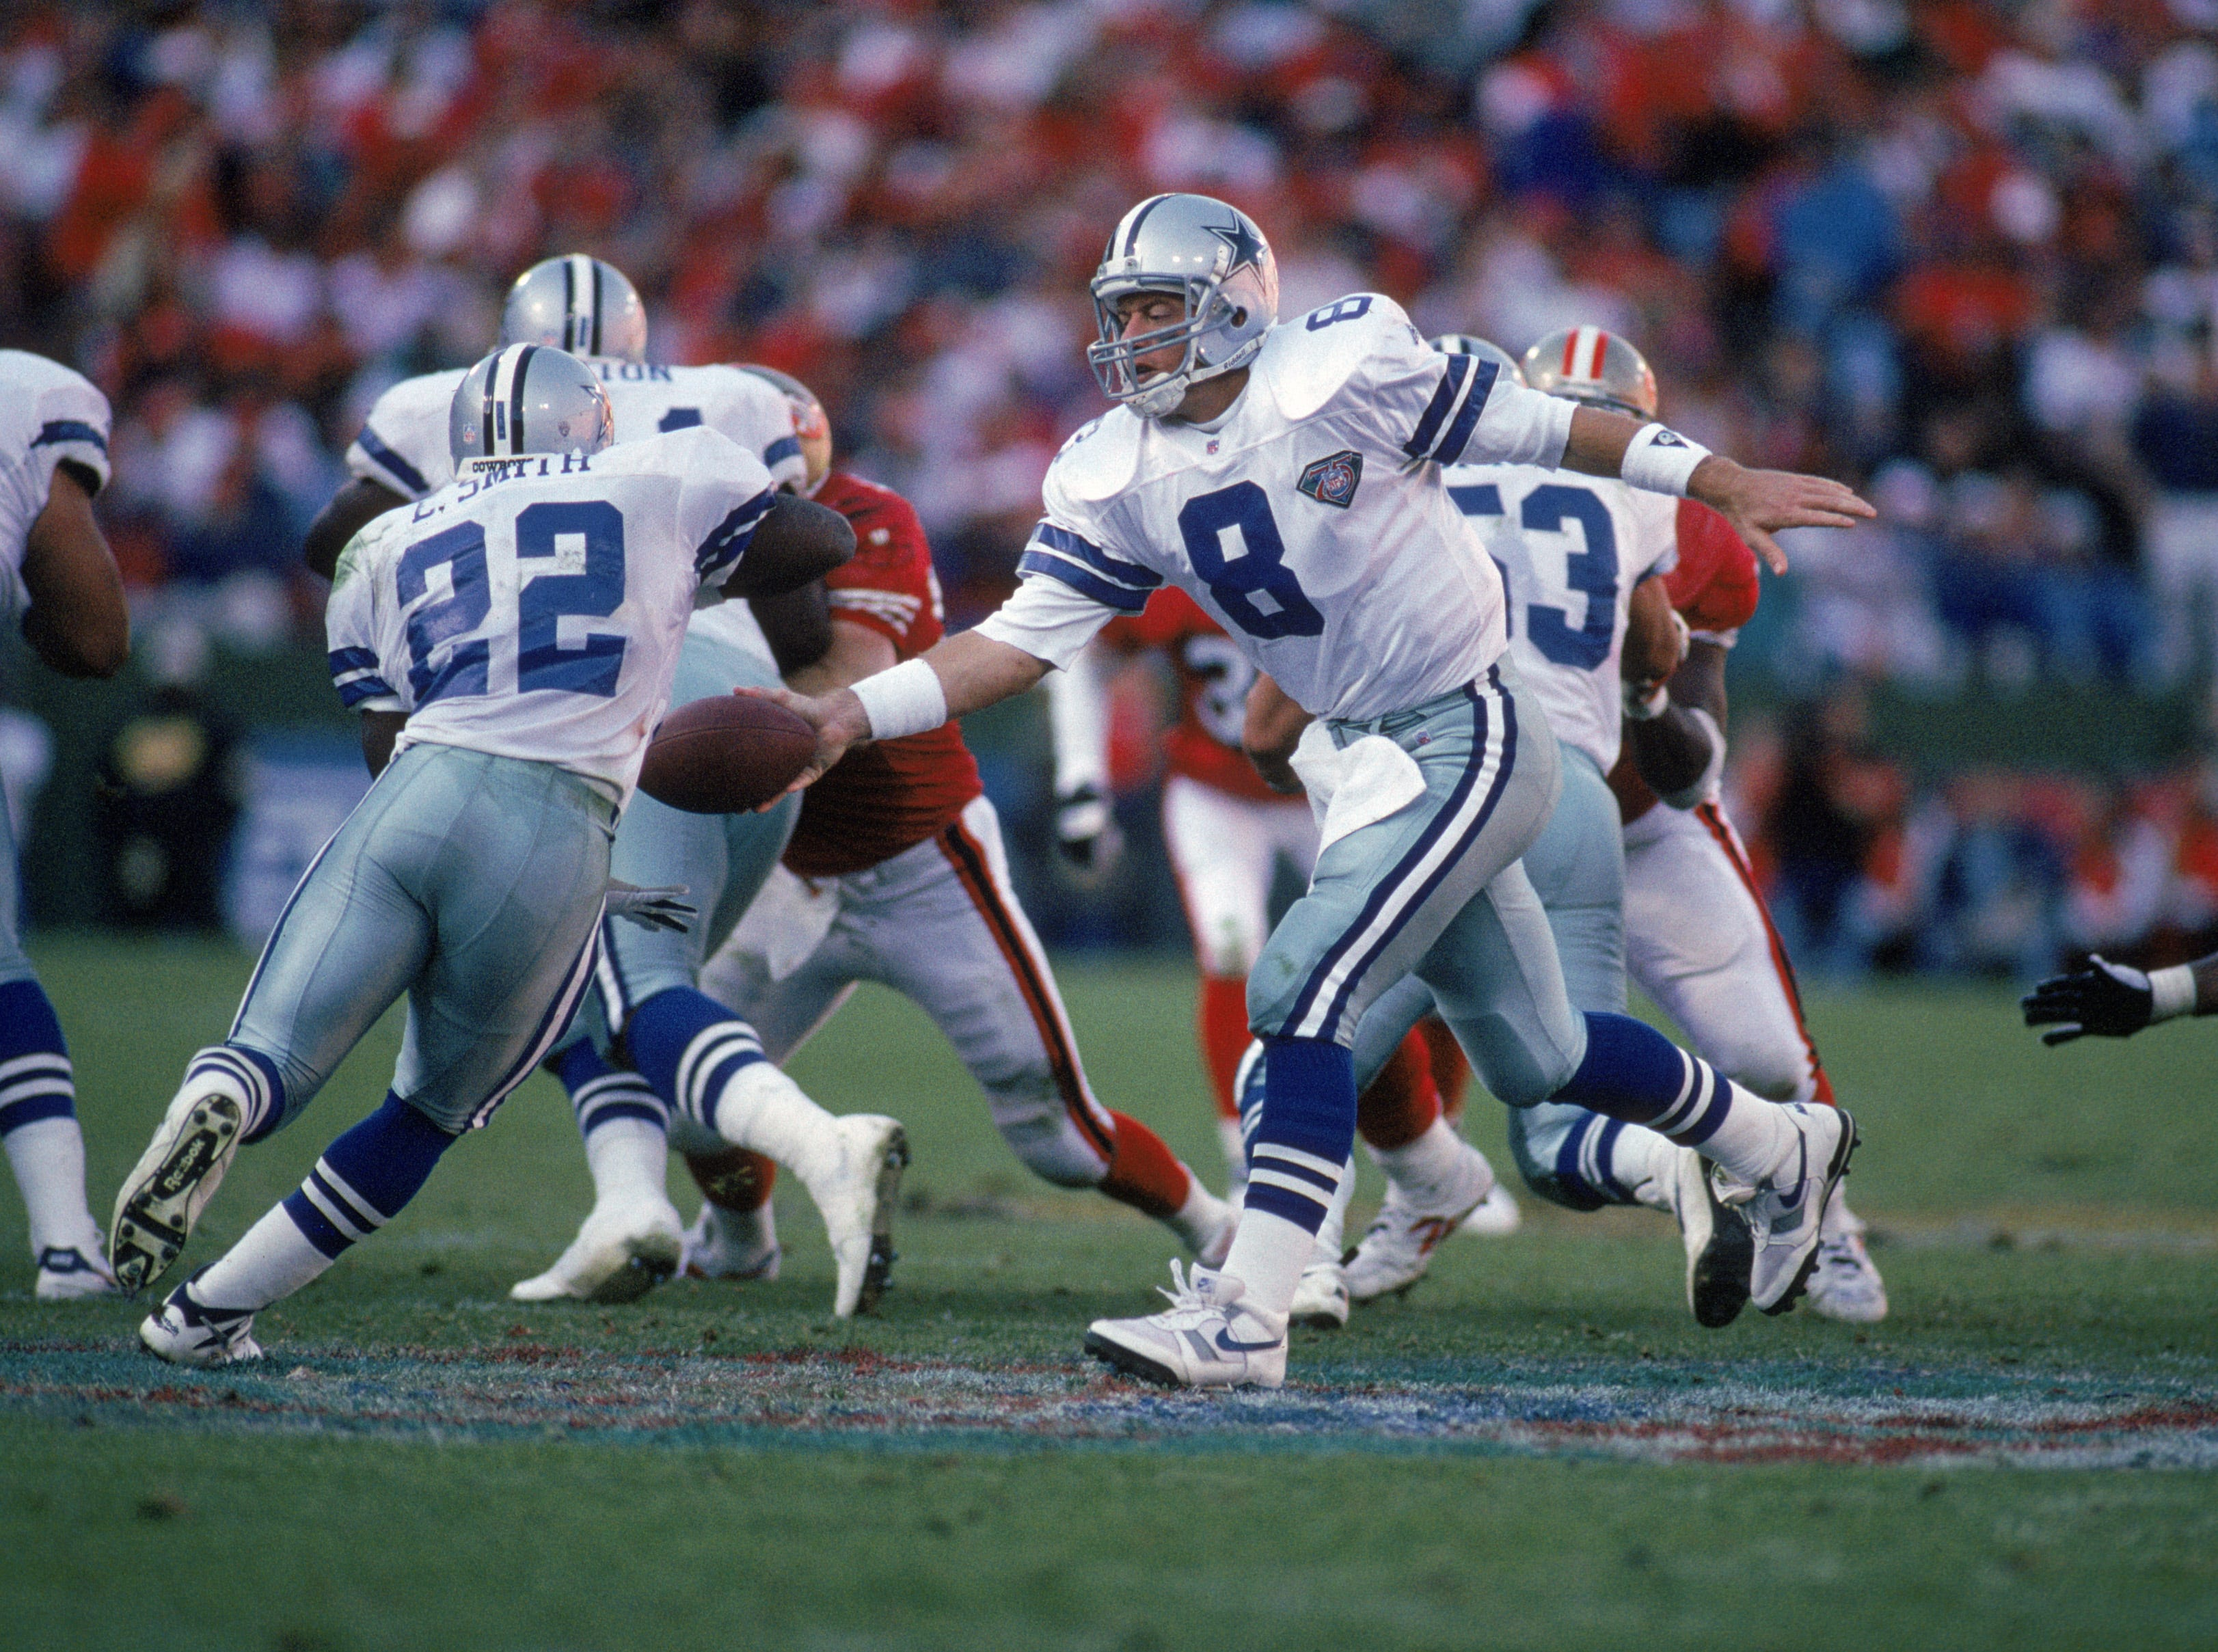 SAN FRANCISCO - NOVEMBER 13:  Quarterback Troy Aikman #8 of the Dallas Cowboys hands off the bal to running back Emmitt Smith #22 during a game against the San Francisco 49ers at Candlestick Park on November 13, 1994 in San Francisco, California.  The 49ers won 21-14.  (Photo by George Rose/Getty Images)